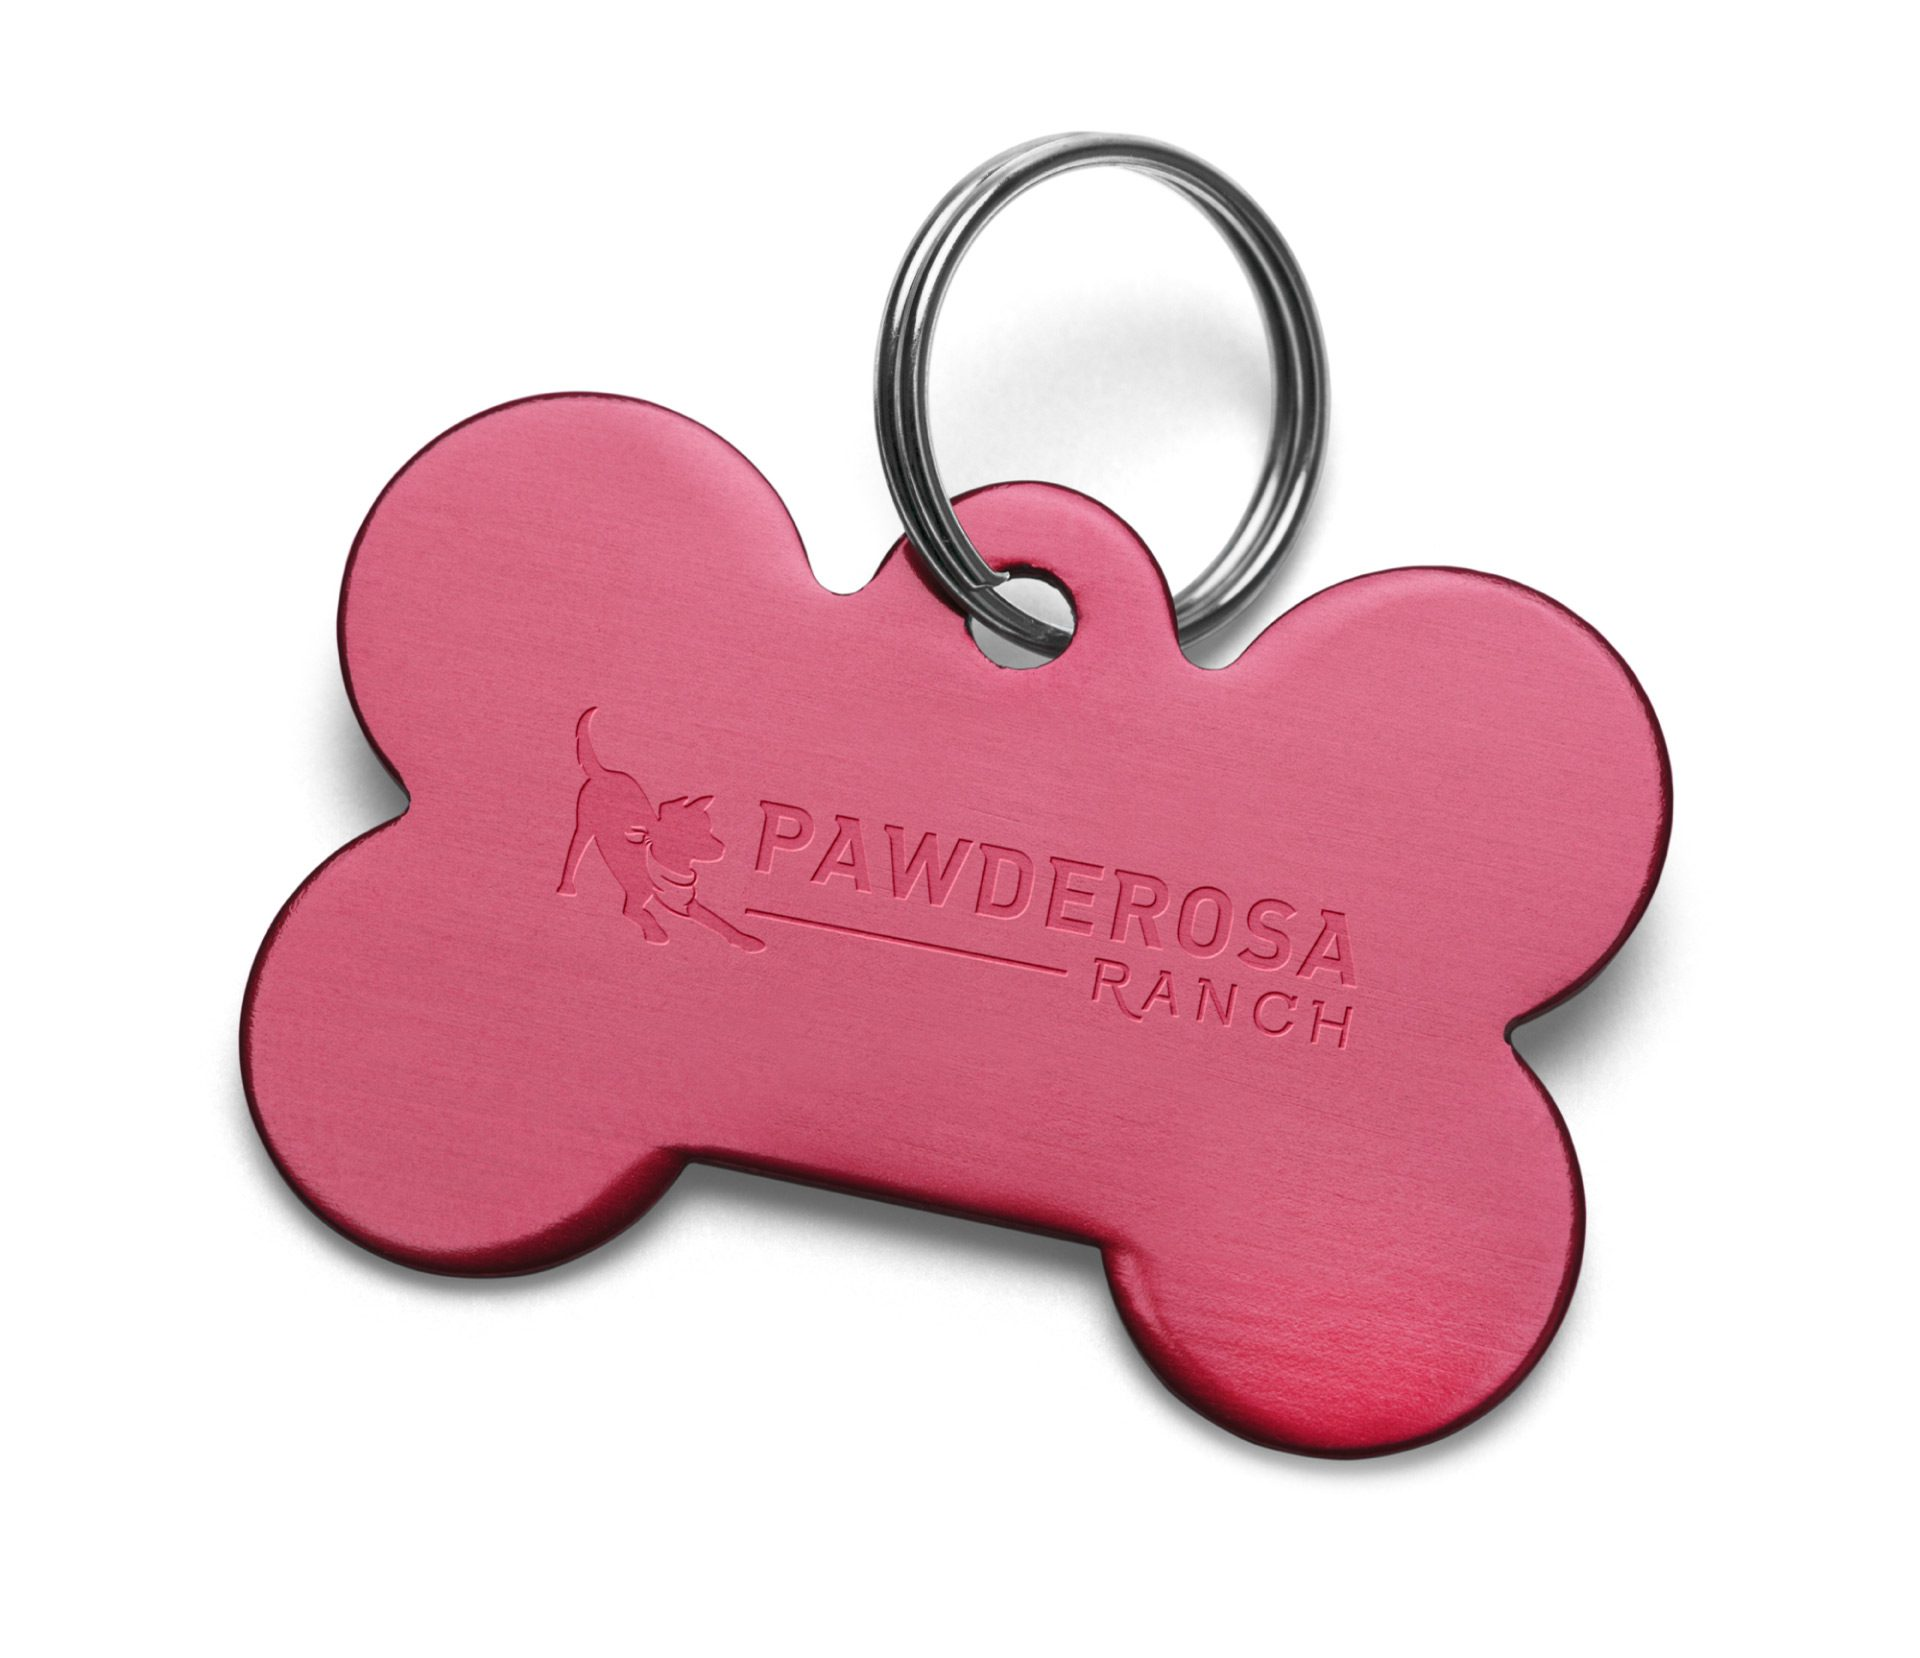 pawderosa photoshopped dog tag